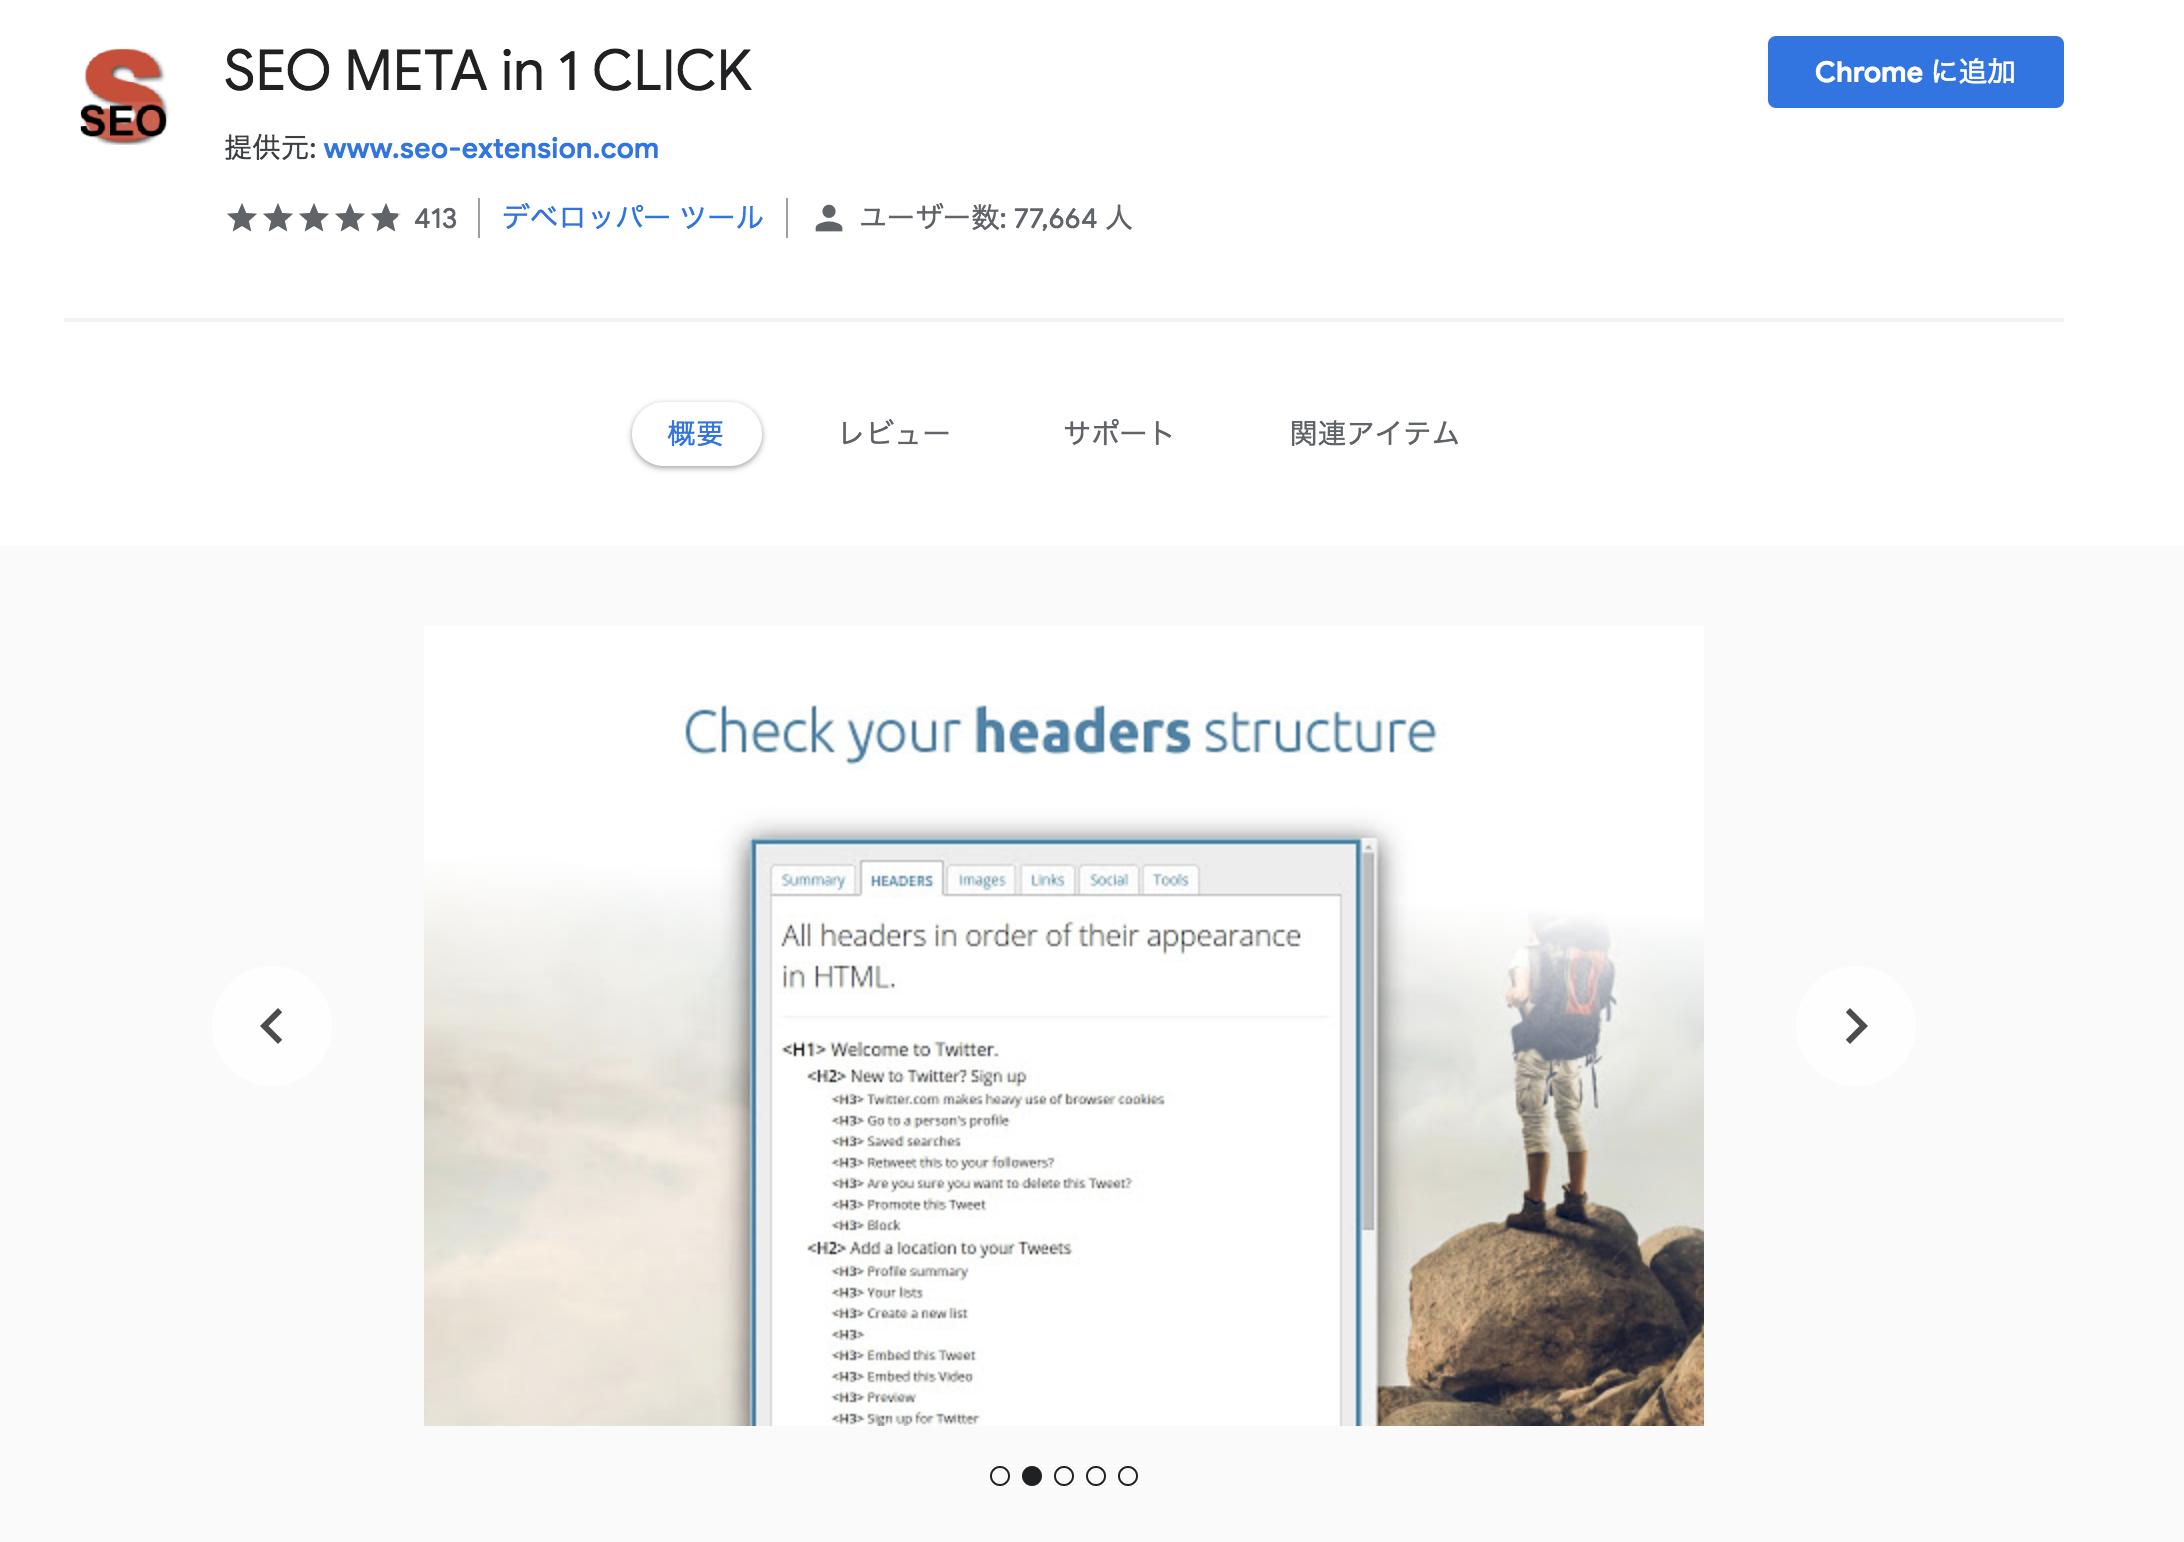 GoogleChrome(グーグルクローム) 拡張機能 SEO META in 1 CLICK